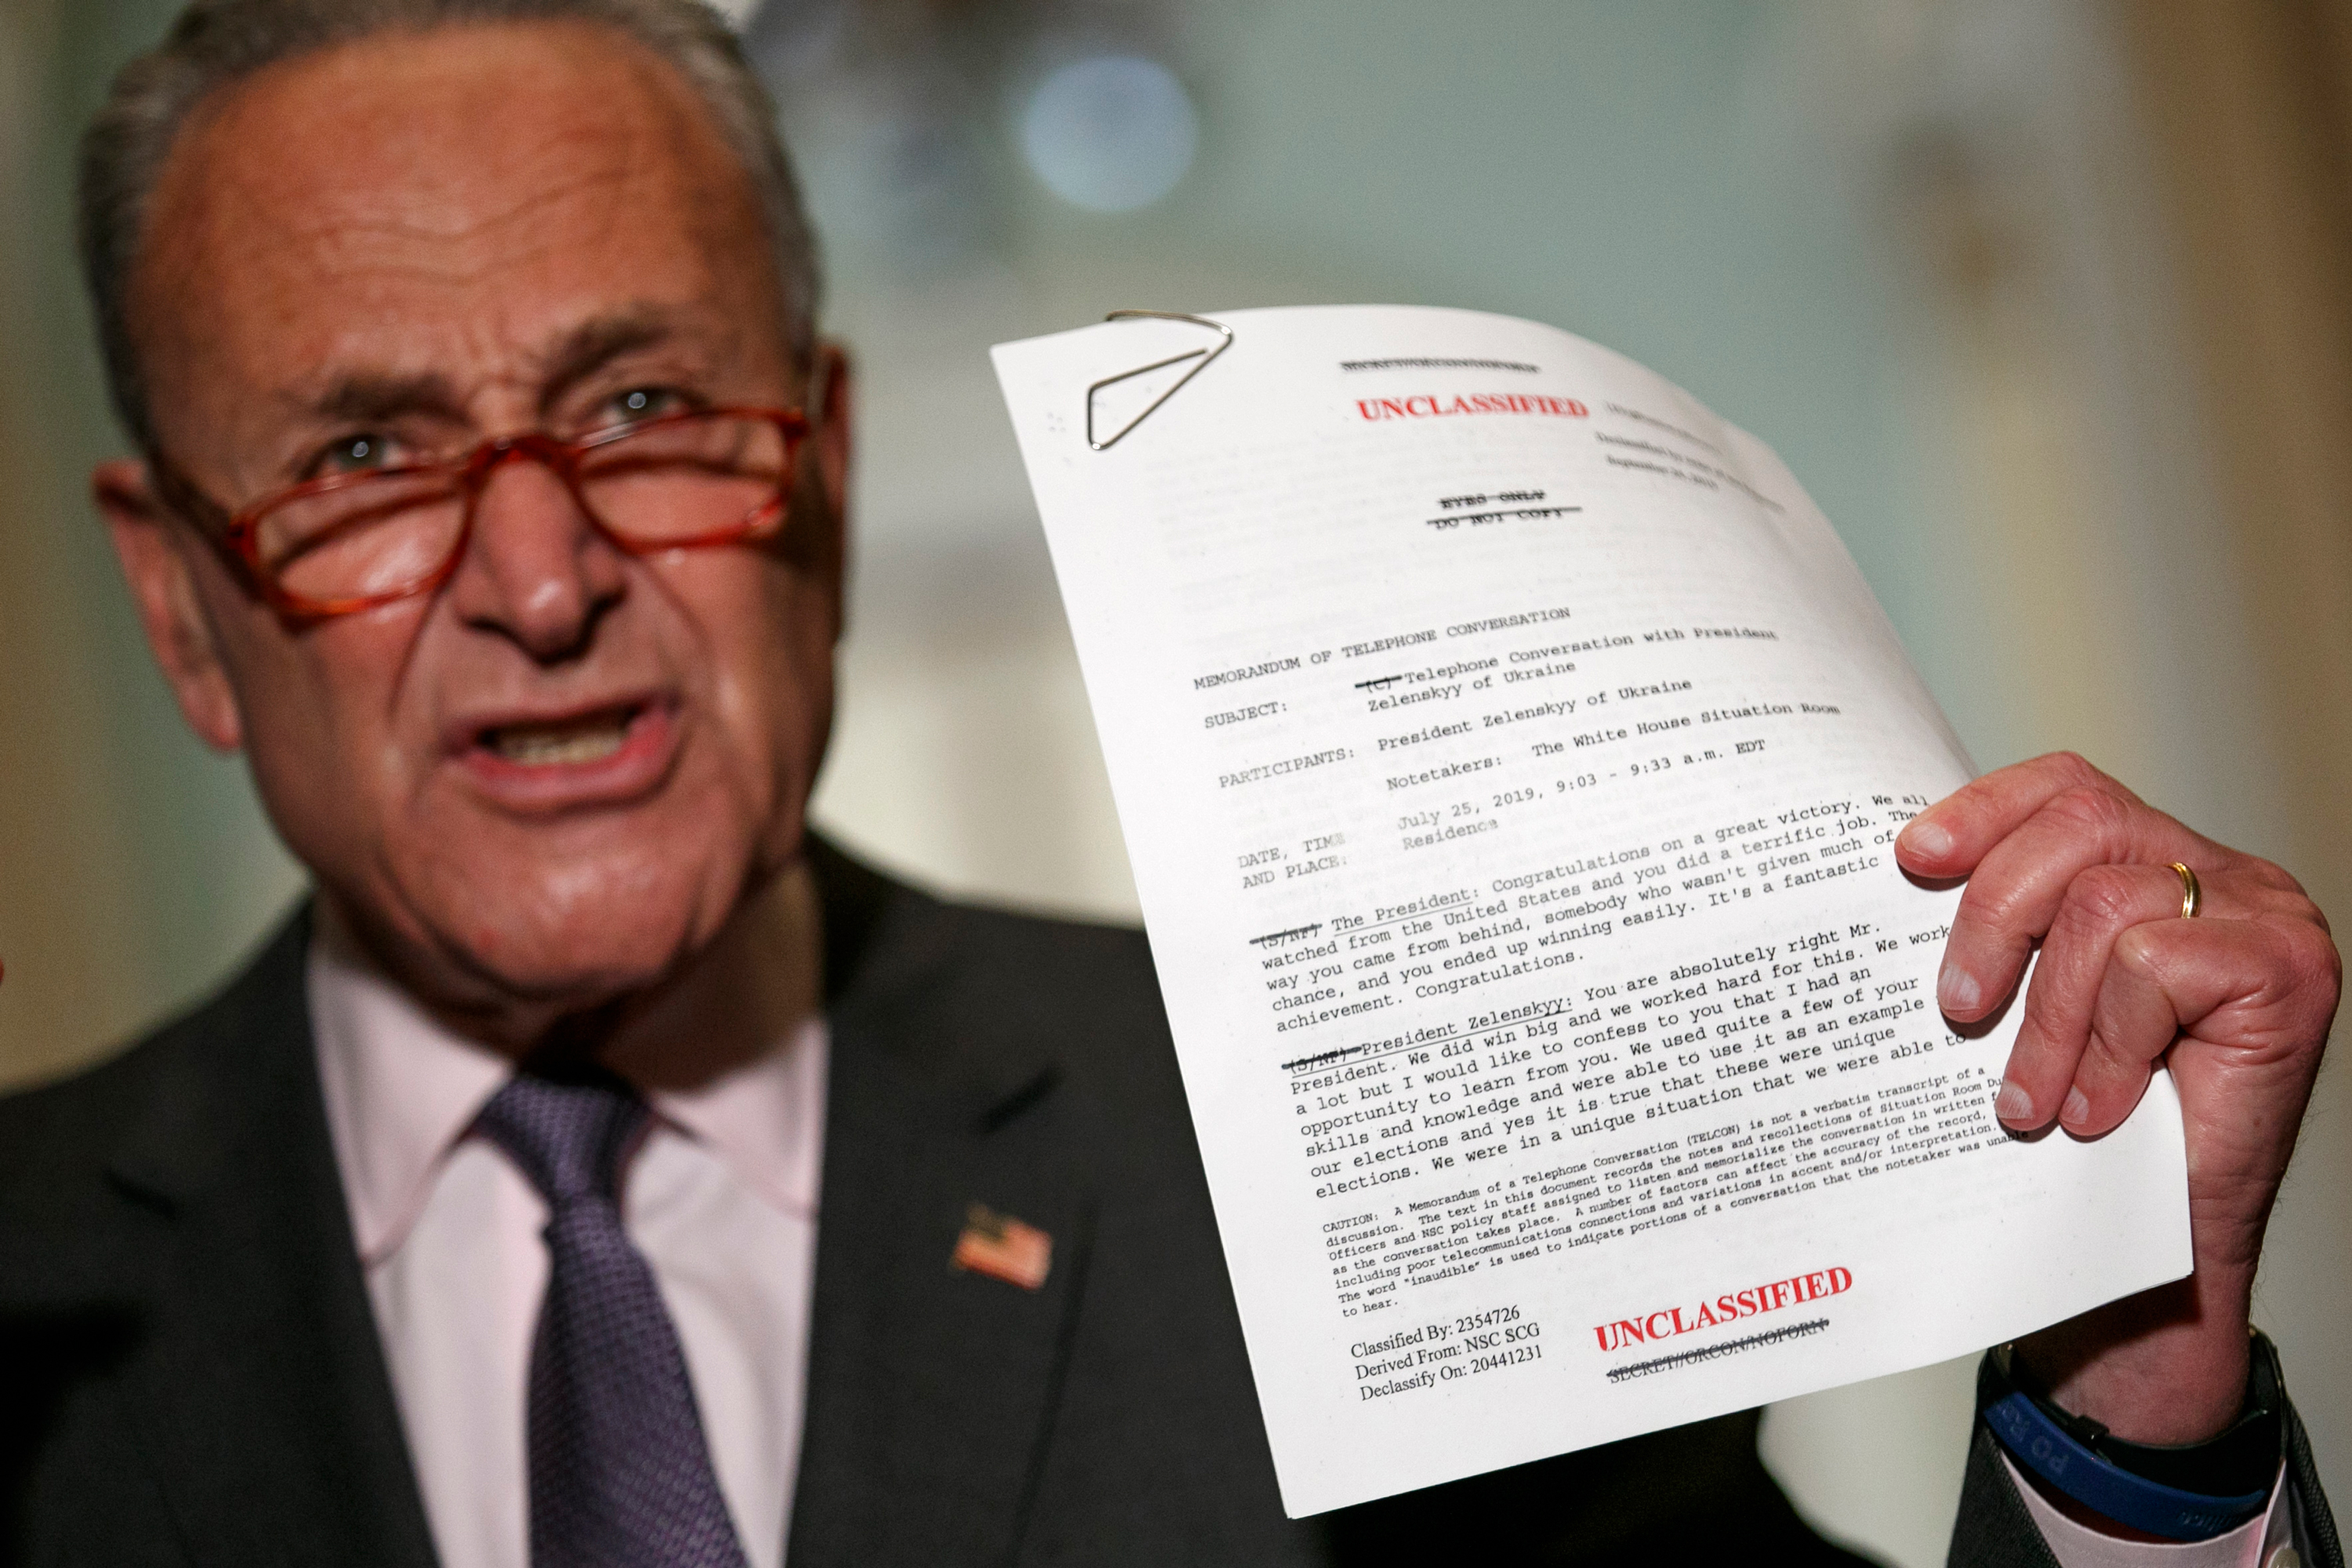 Senate Minority Leader Sen. Chuck Schumer of N.Y. holds up a copy of a White House released rough transcript of a phone call between President Donald Trump and the President of Ukraine as Schumer speaks to the media about an impeachment inquiry on President Trump, Wednesday Sept. 25, 2019, on Capitol Hill in Washington.